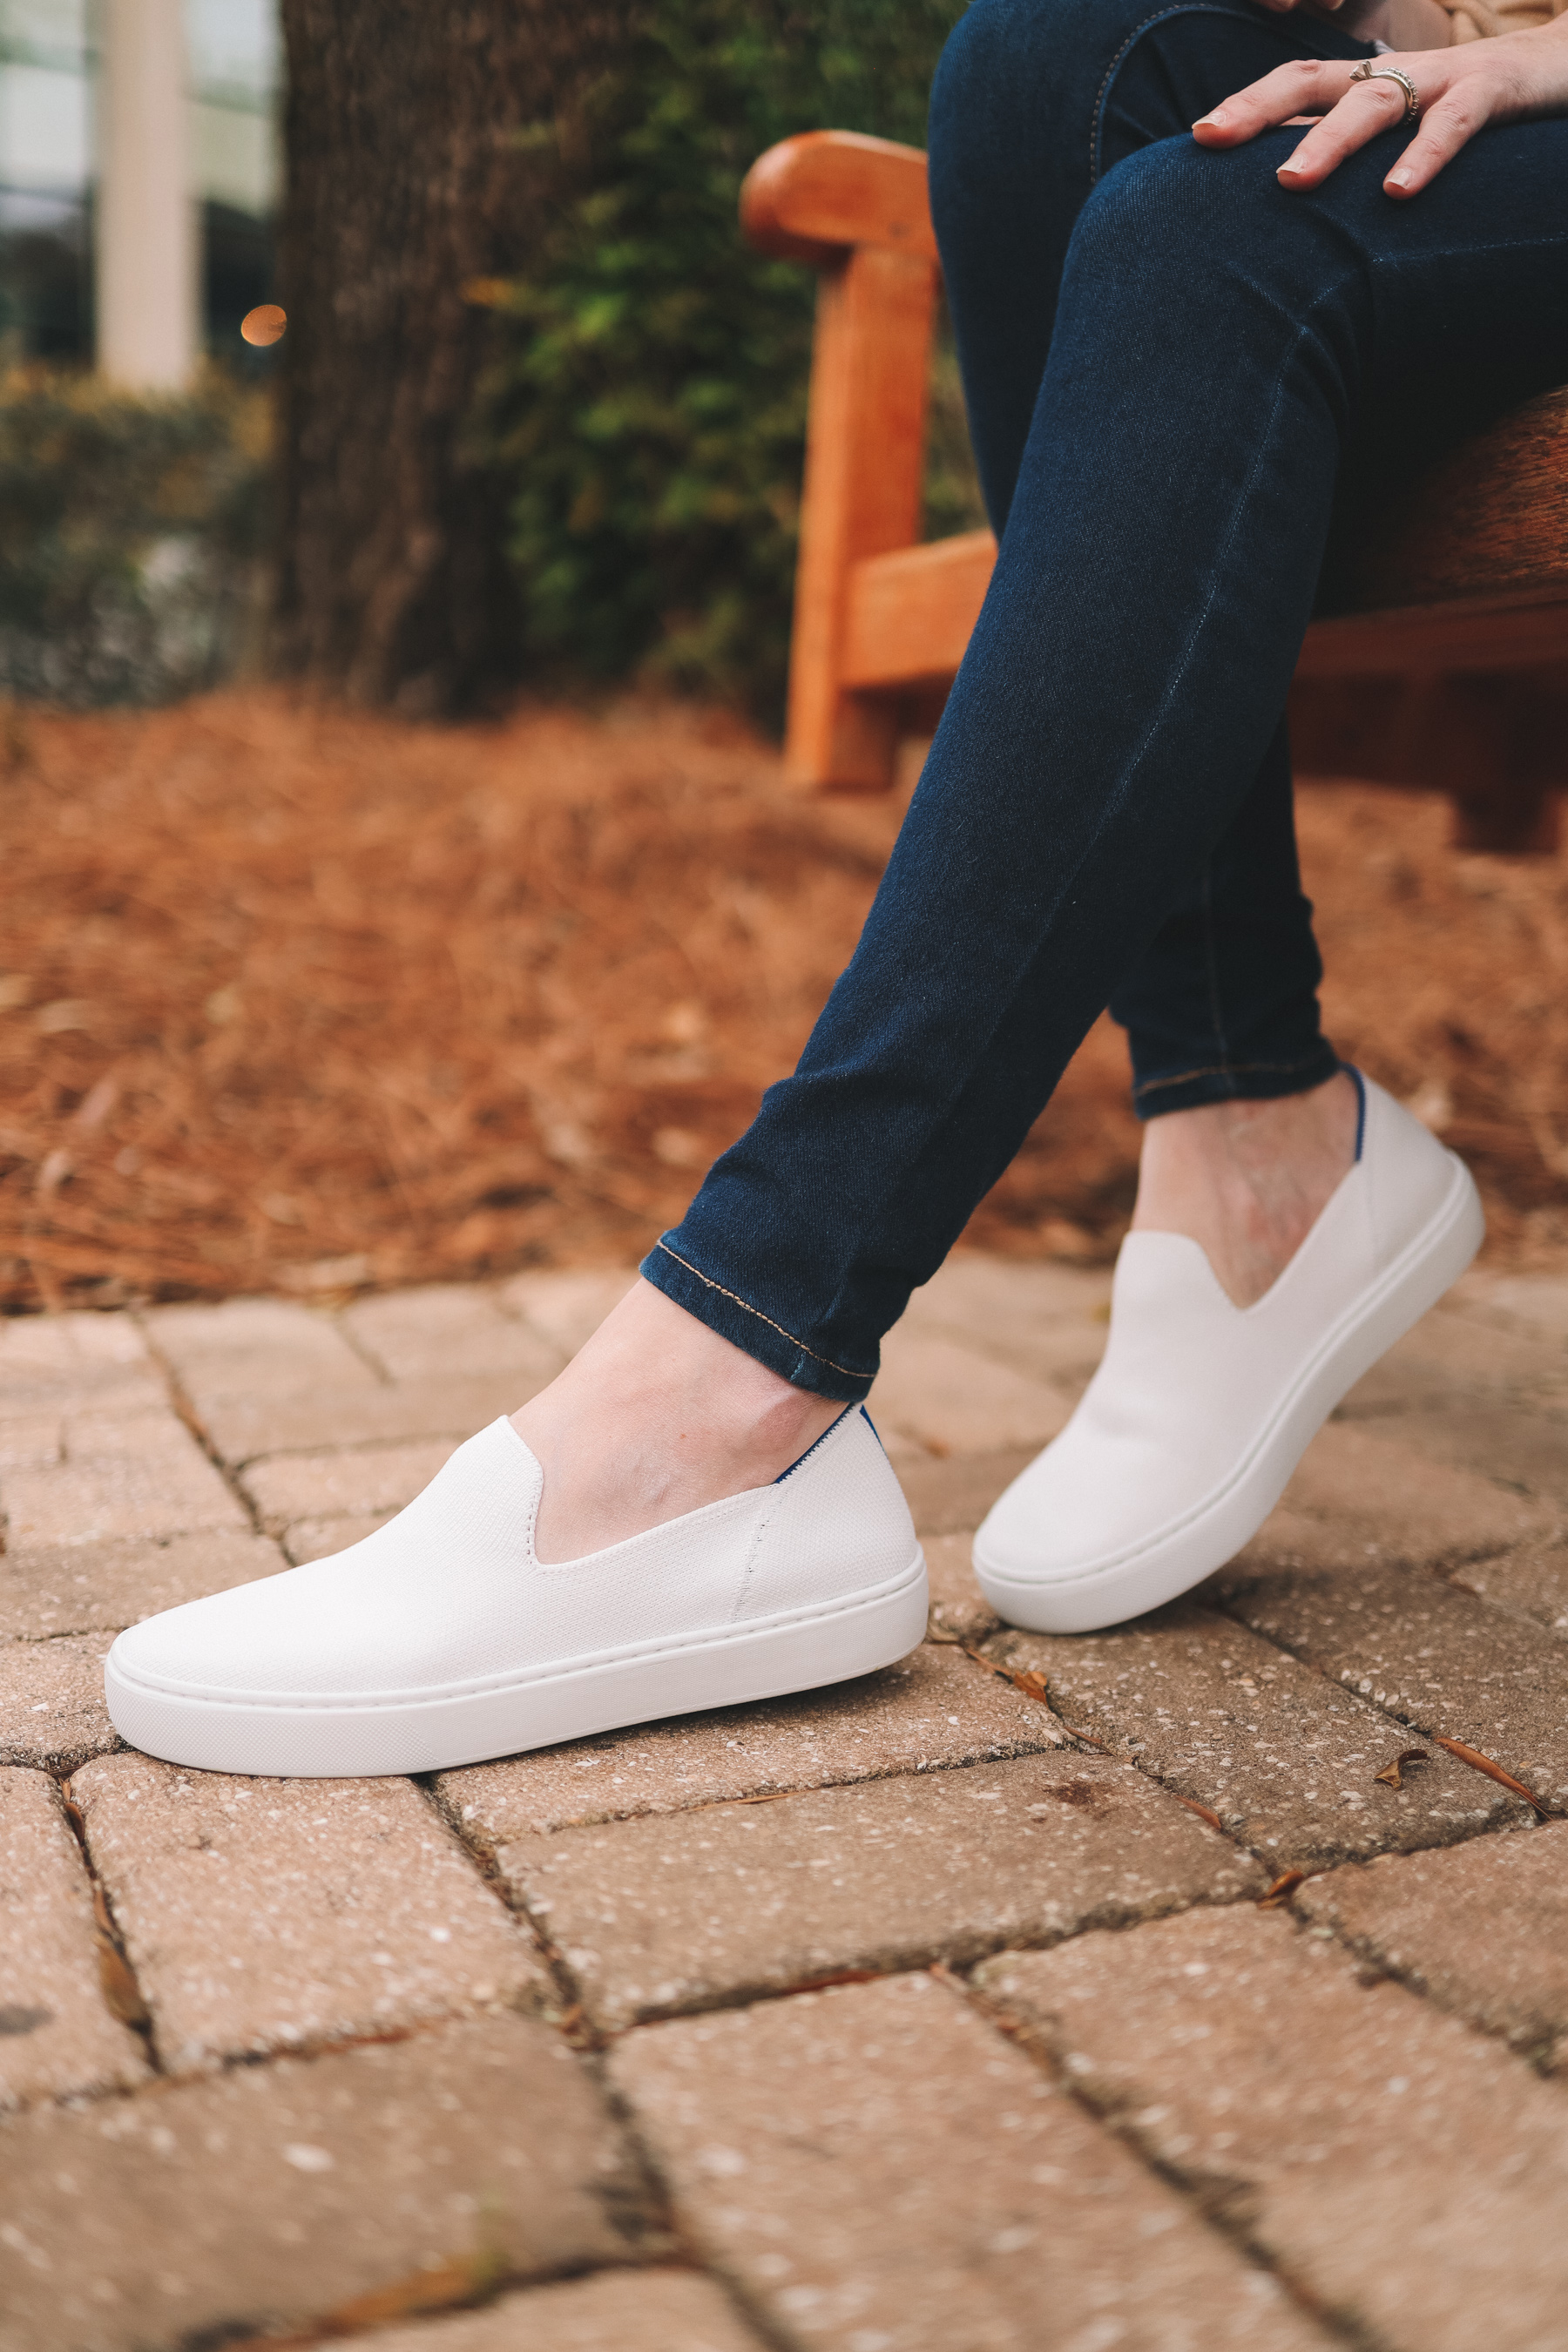 Rothy's Slip-On Sneaker Review by Kelly Larkin